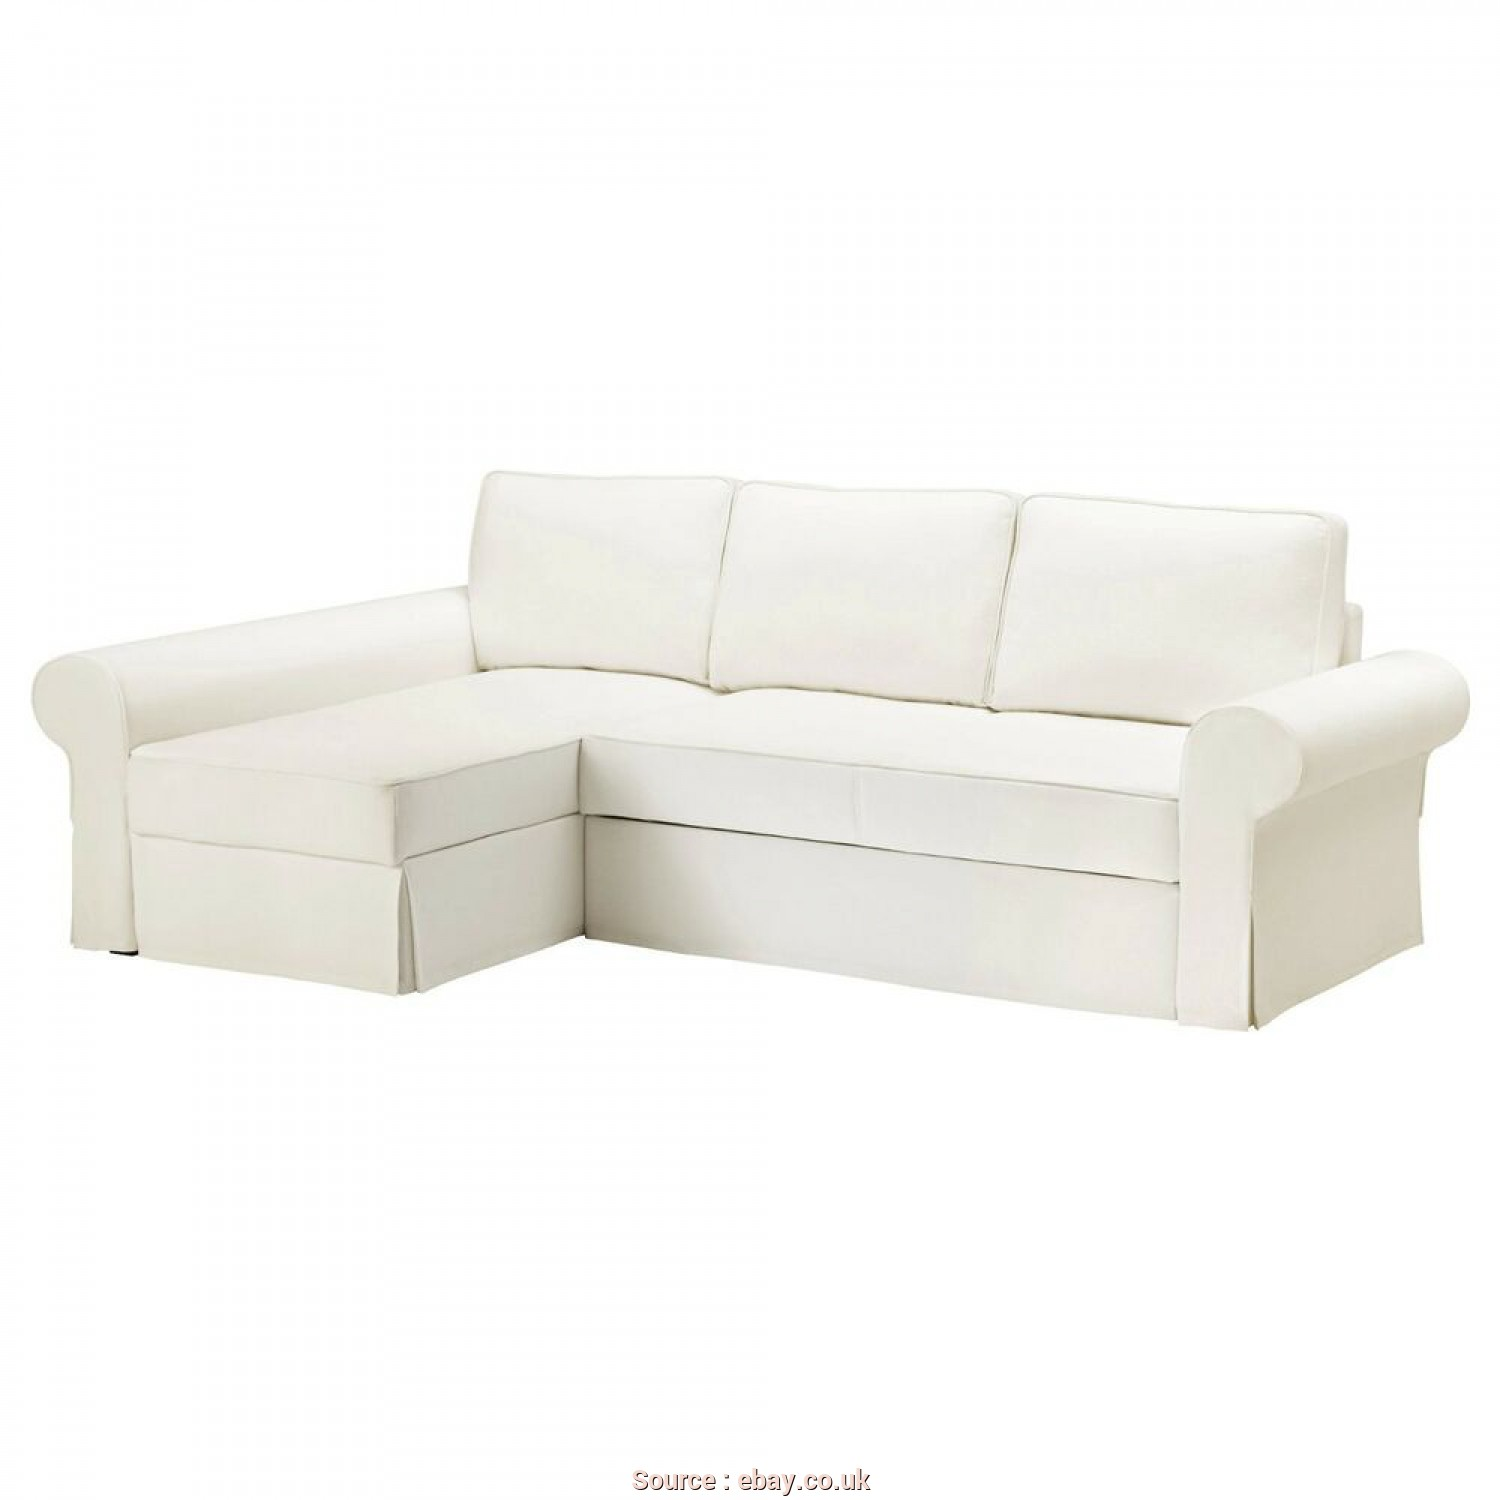 Ikea Backabro Ebay, Esclusivo Details About Ikea BACKABRO Cover Sofa-Bed With Chaise Longue Hylte White